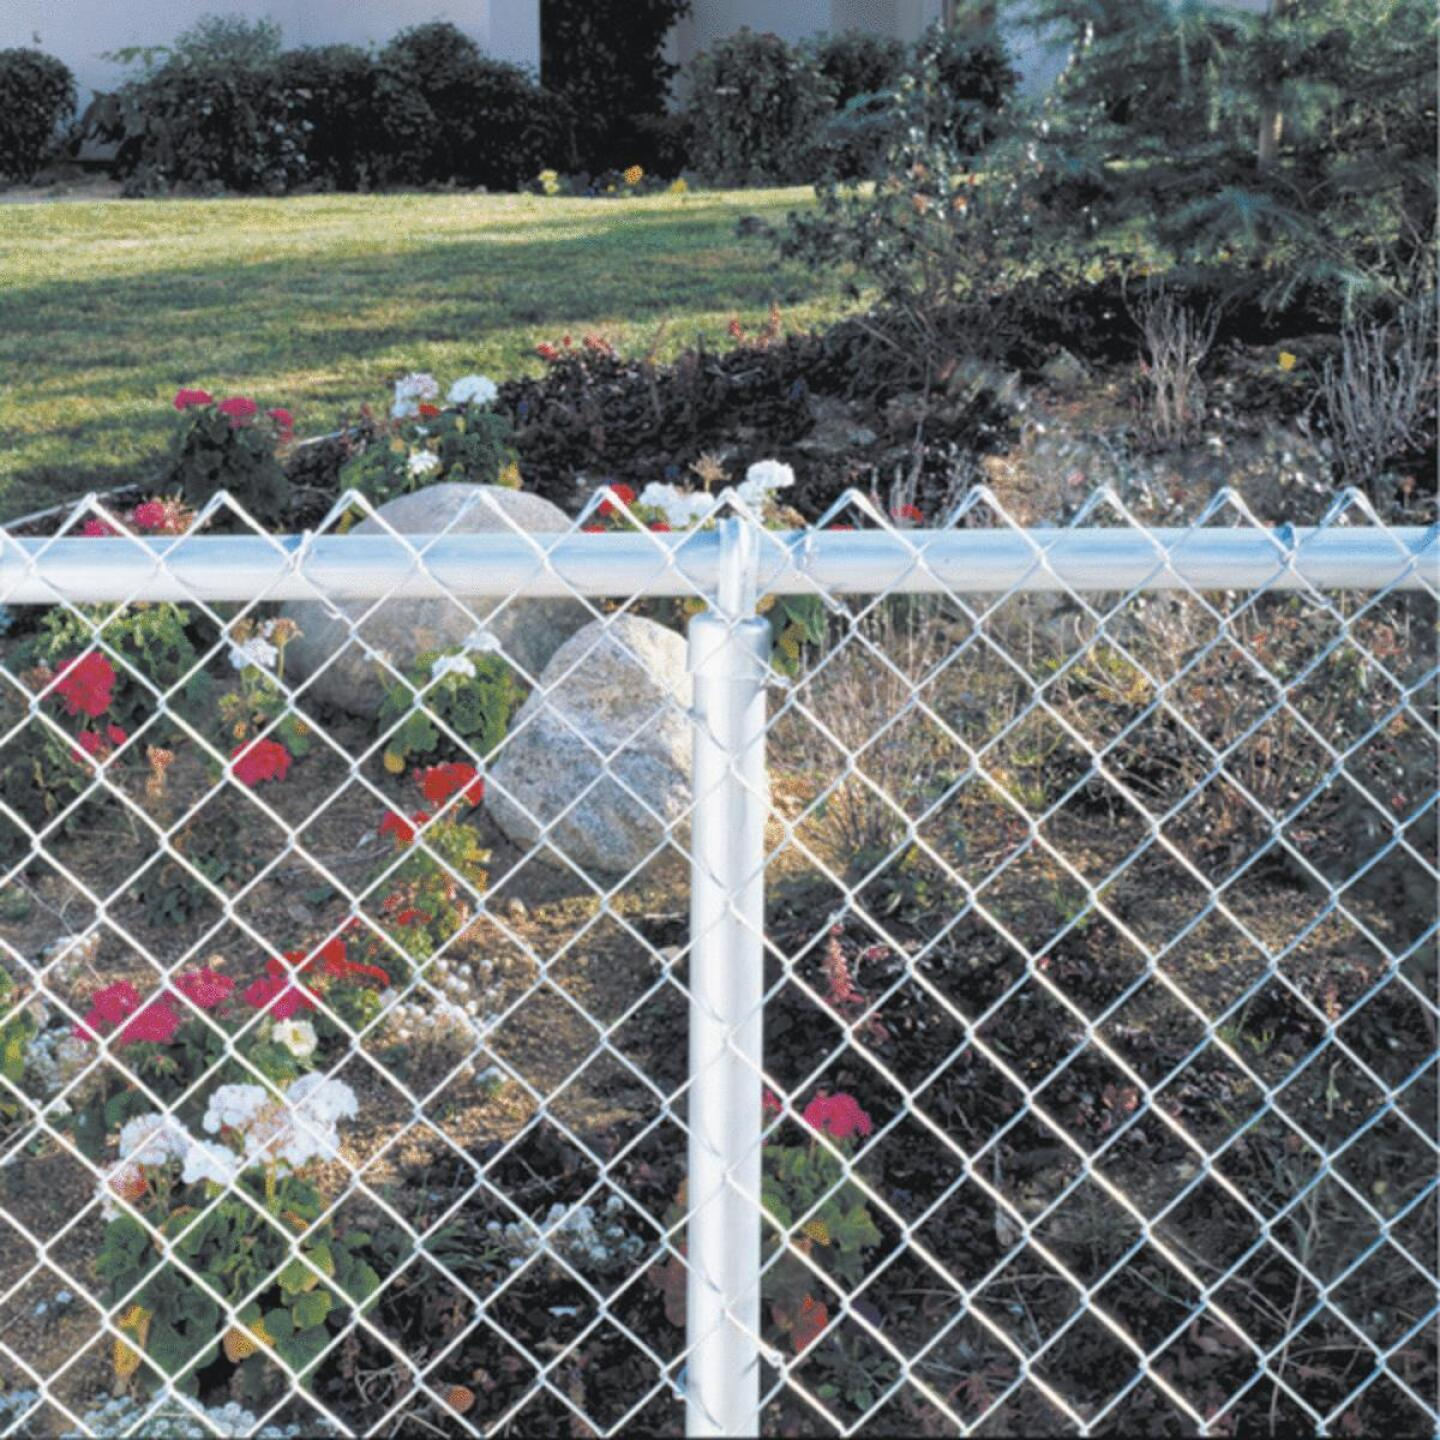 Midwest Air Tech 10 ft. 6 in. L x 1-3/8 in. I.D. 18 Ga. Steel Chain Link Fence Top Rail Image 2